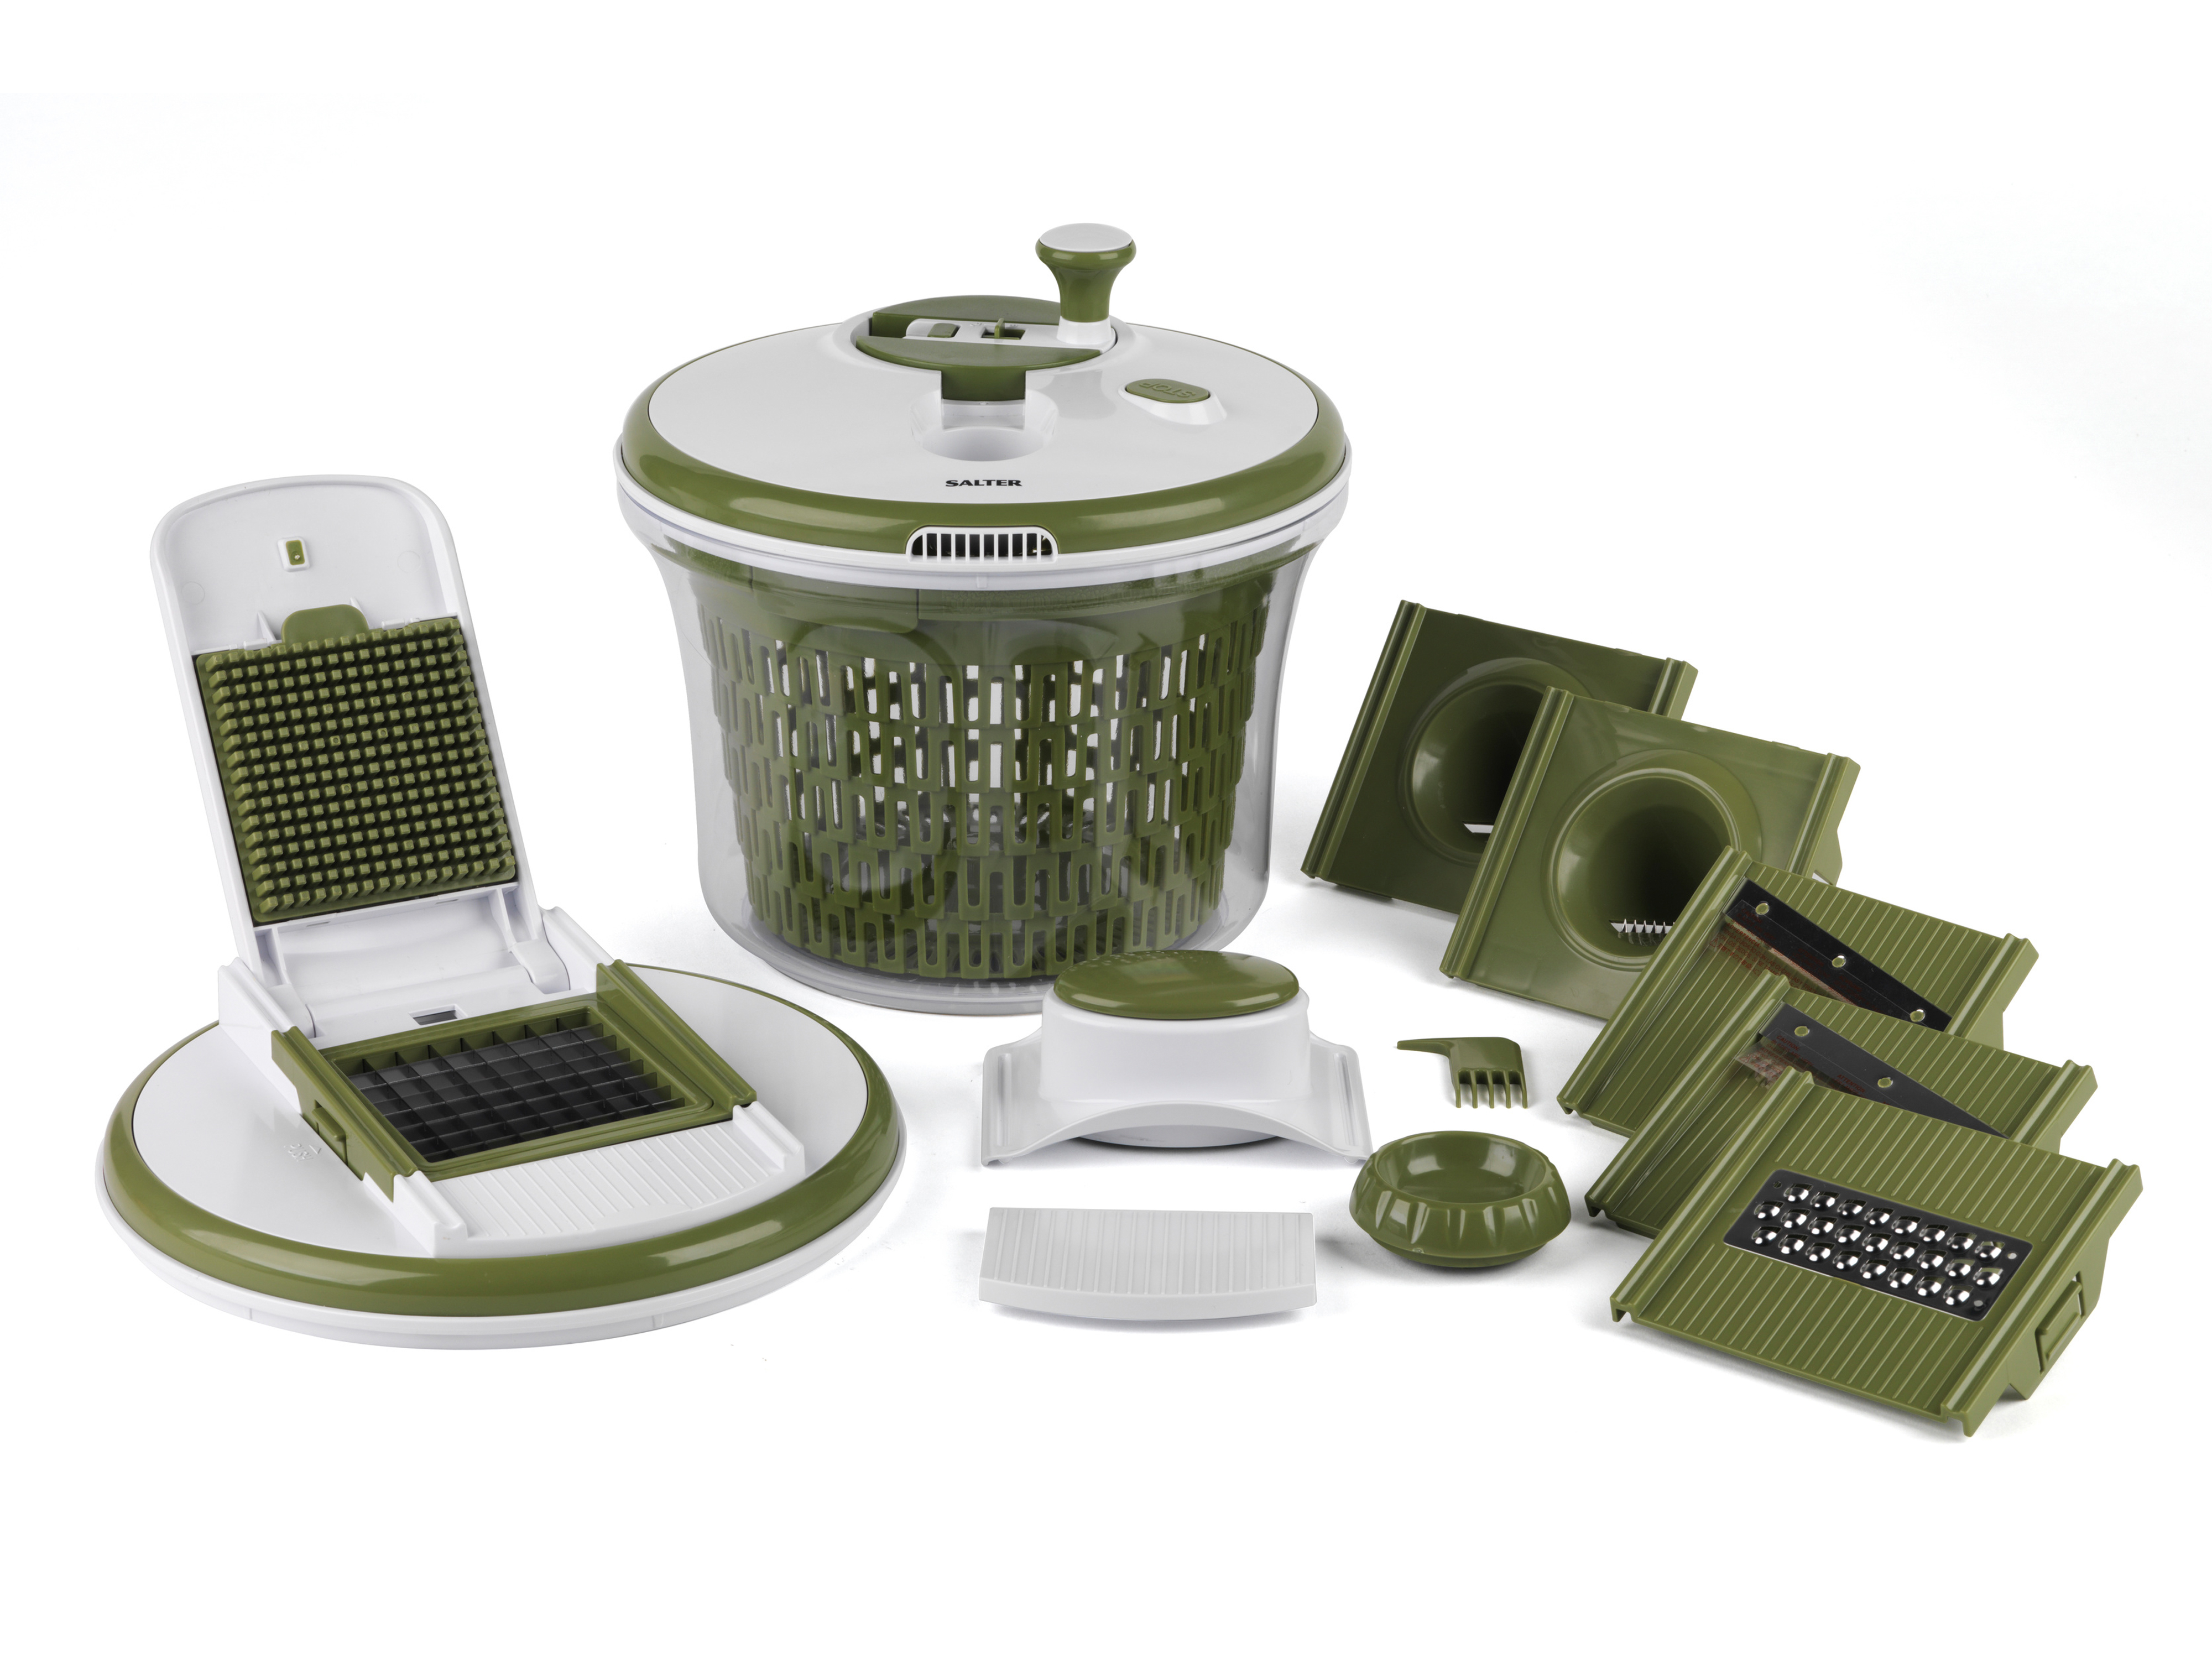 Salter all in one food preparation set green kitchen for All kitchen set